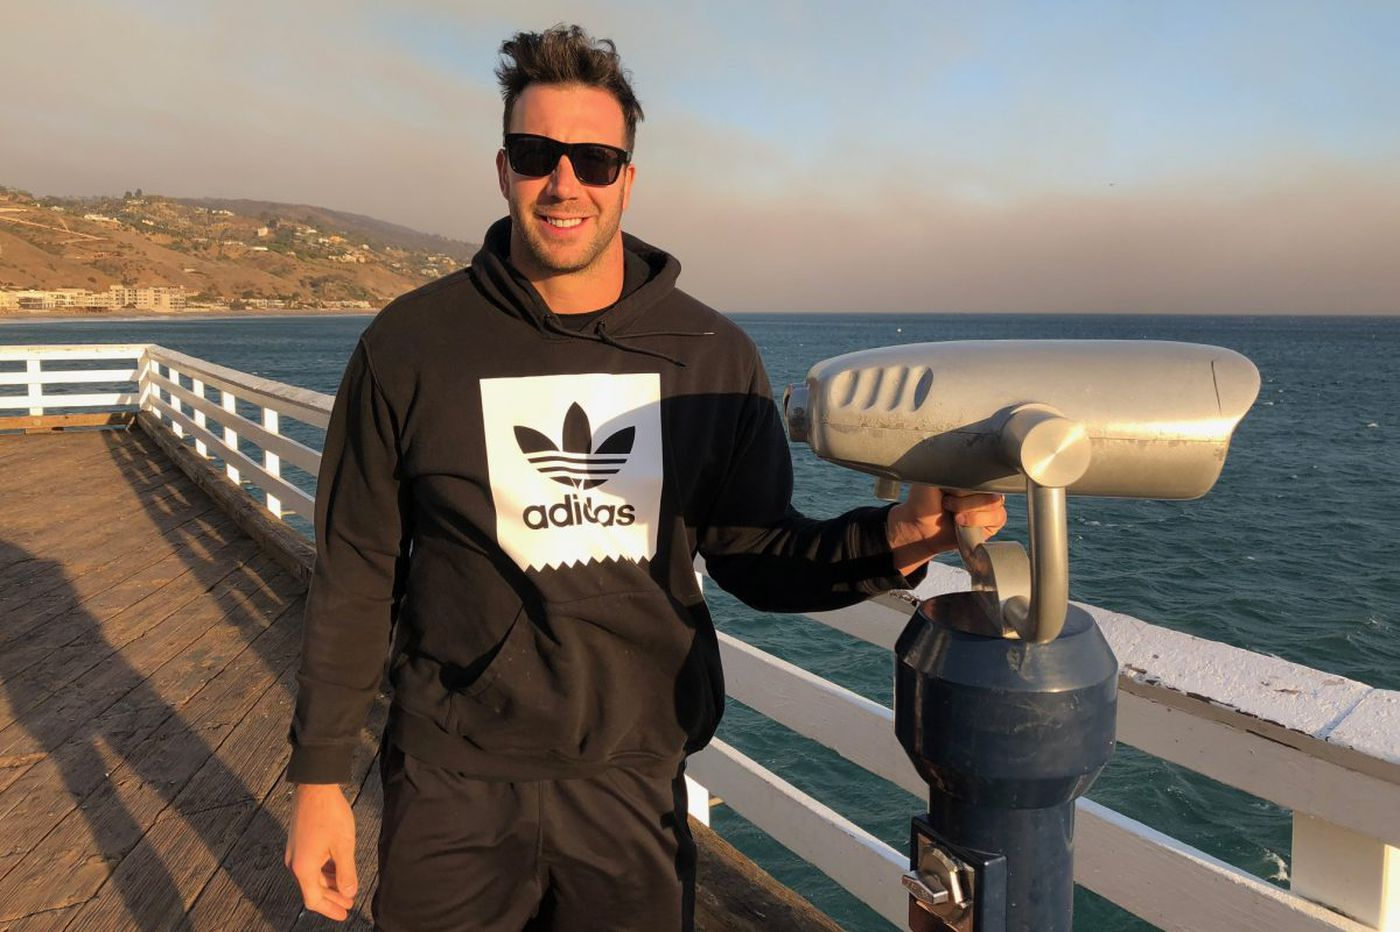 Connor Barwin goes from Philly fishbowl to L.A. anonymity